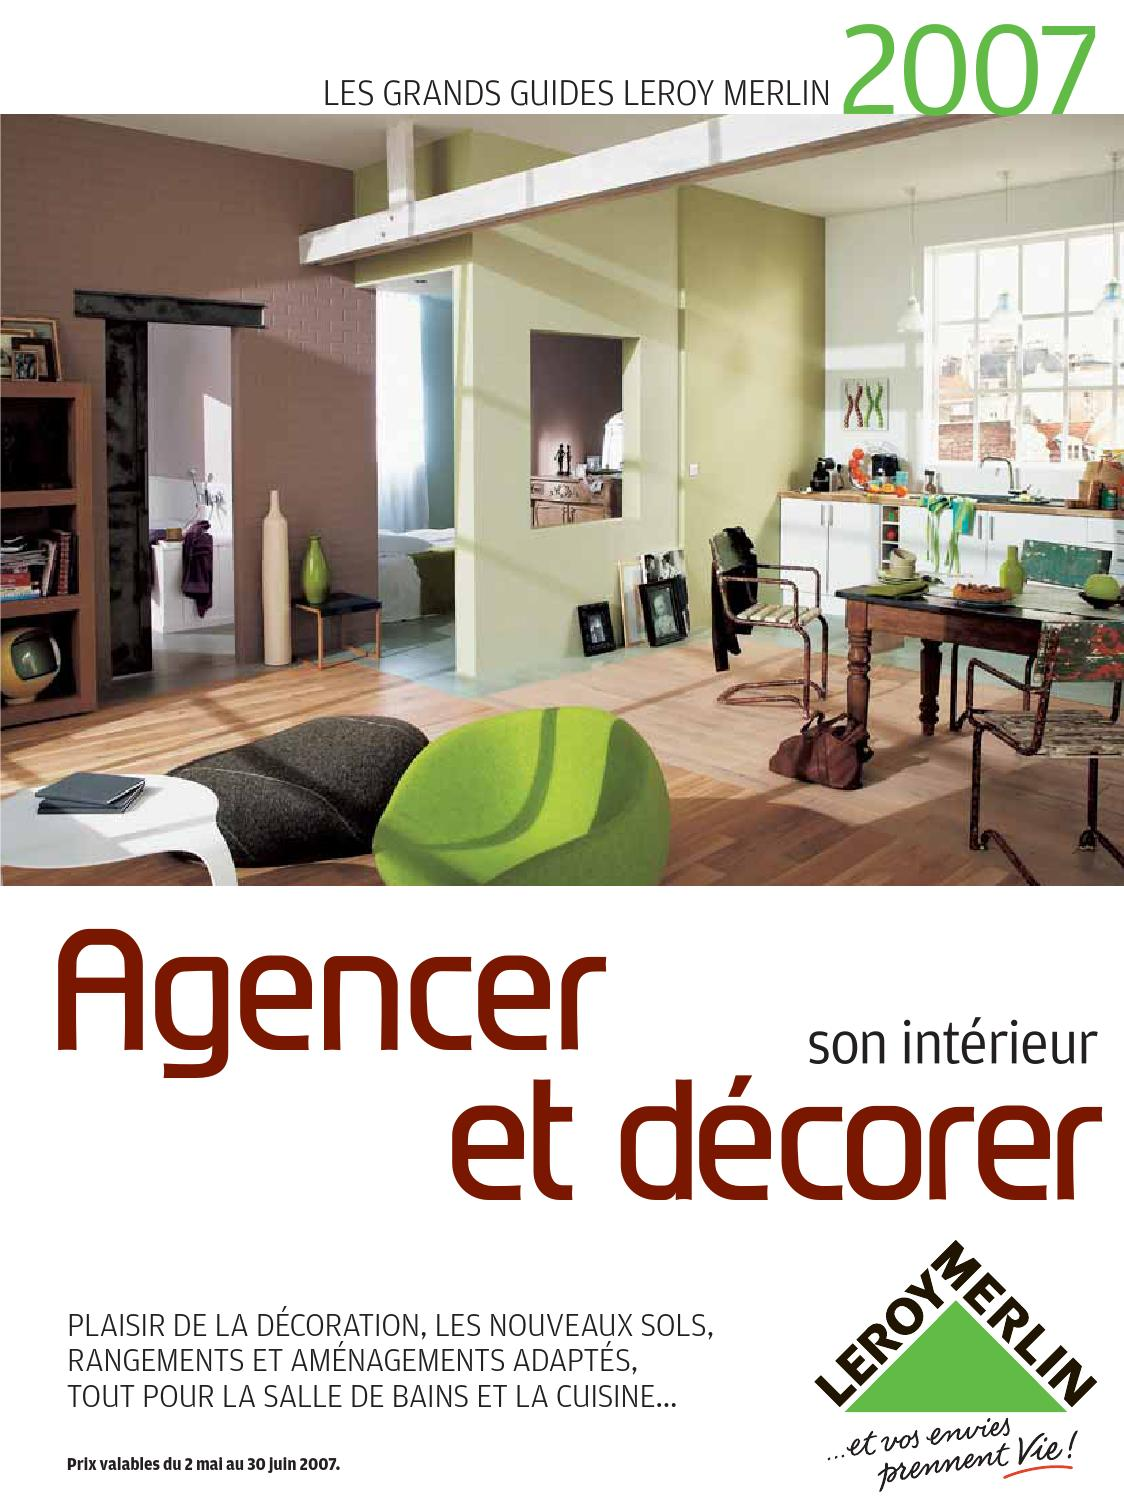 agencer et decorer son interieur l m by nabila hb issuu. Black Bedroom Furniture Sets. Home Design Ideas